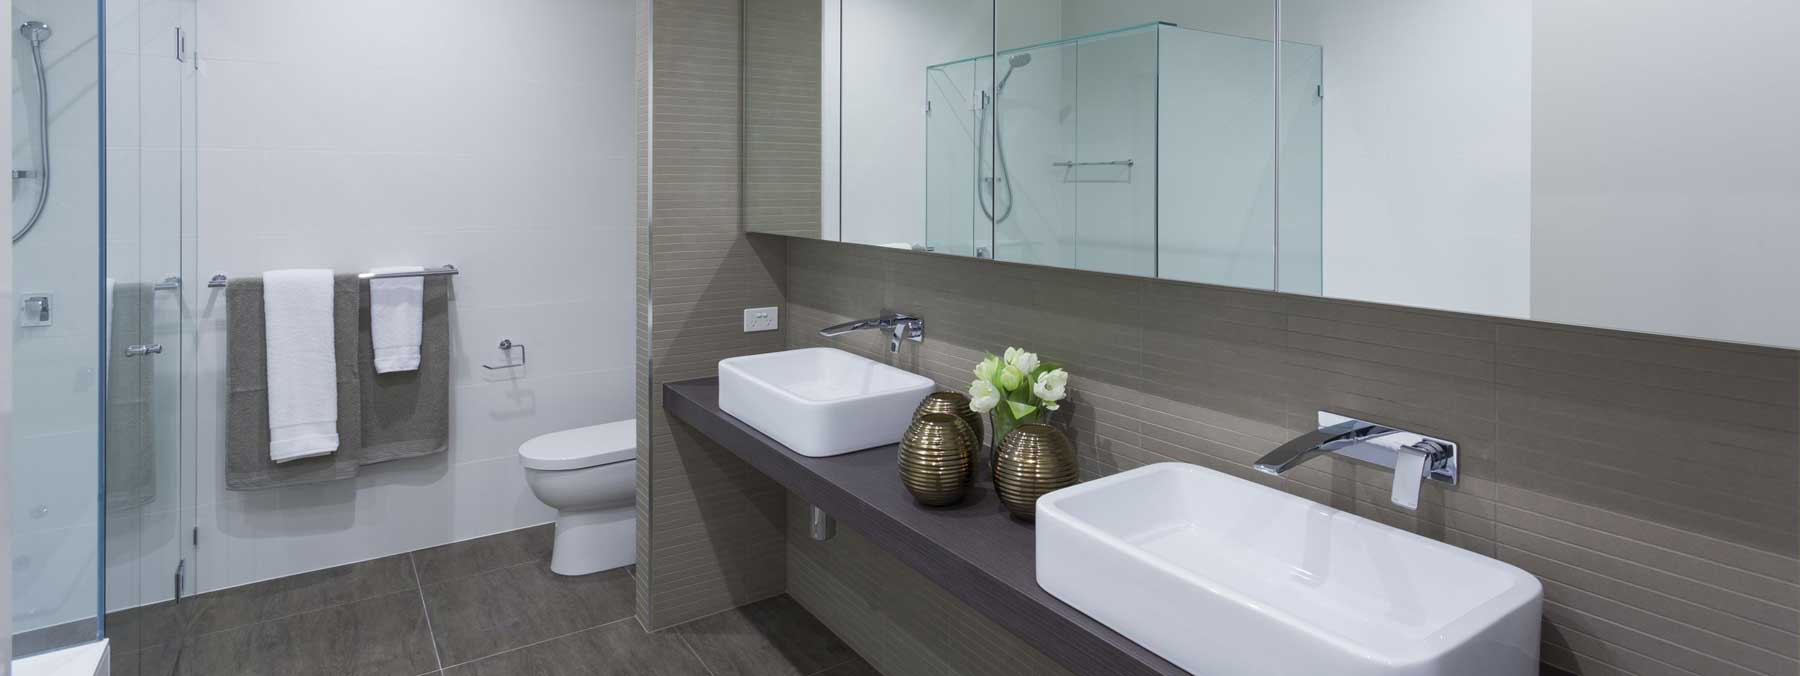 Complete Bathroom Renovations Sydney